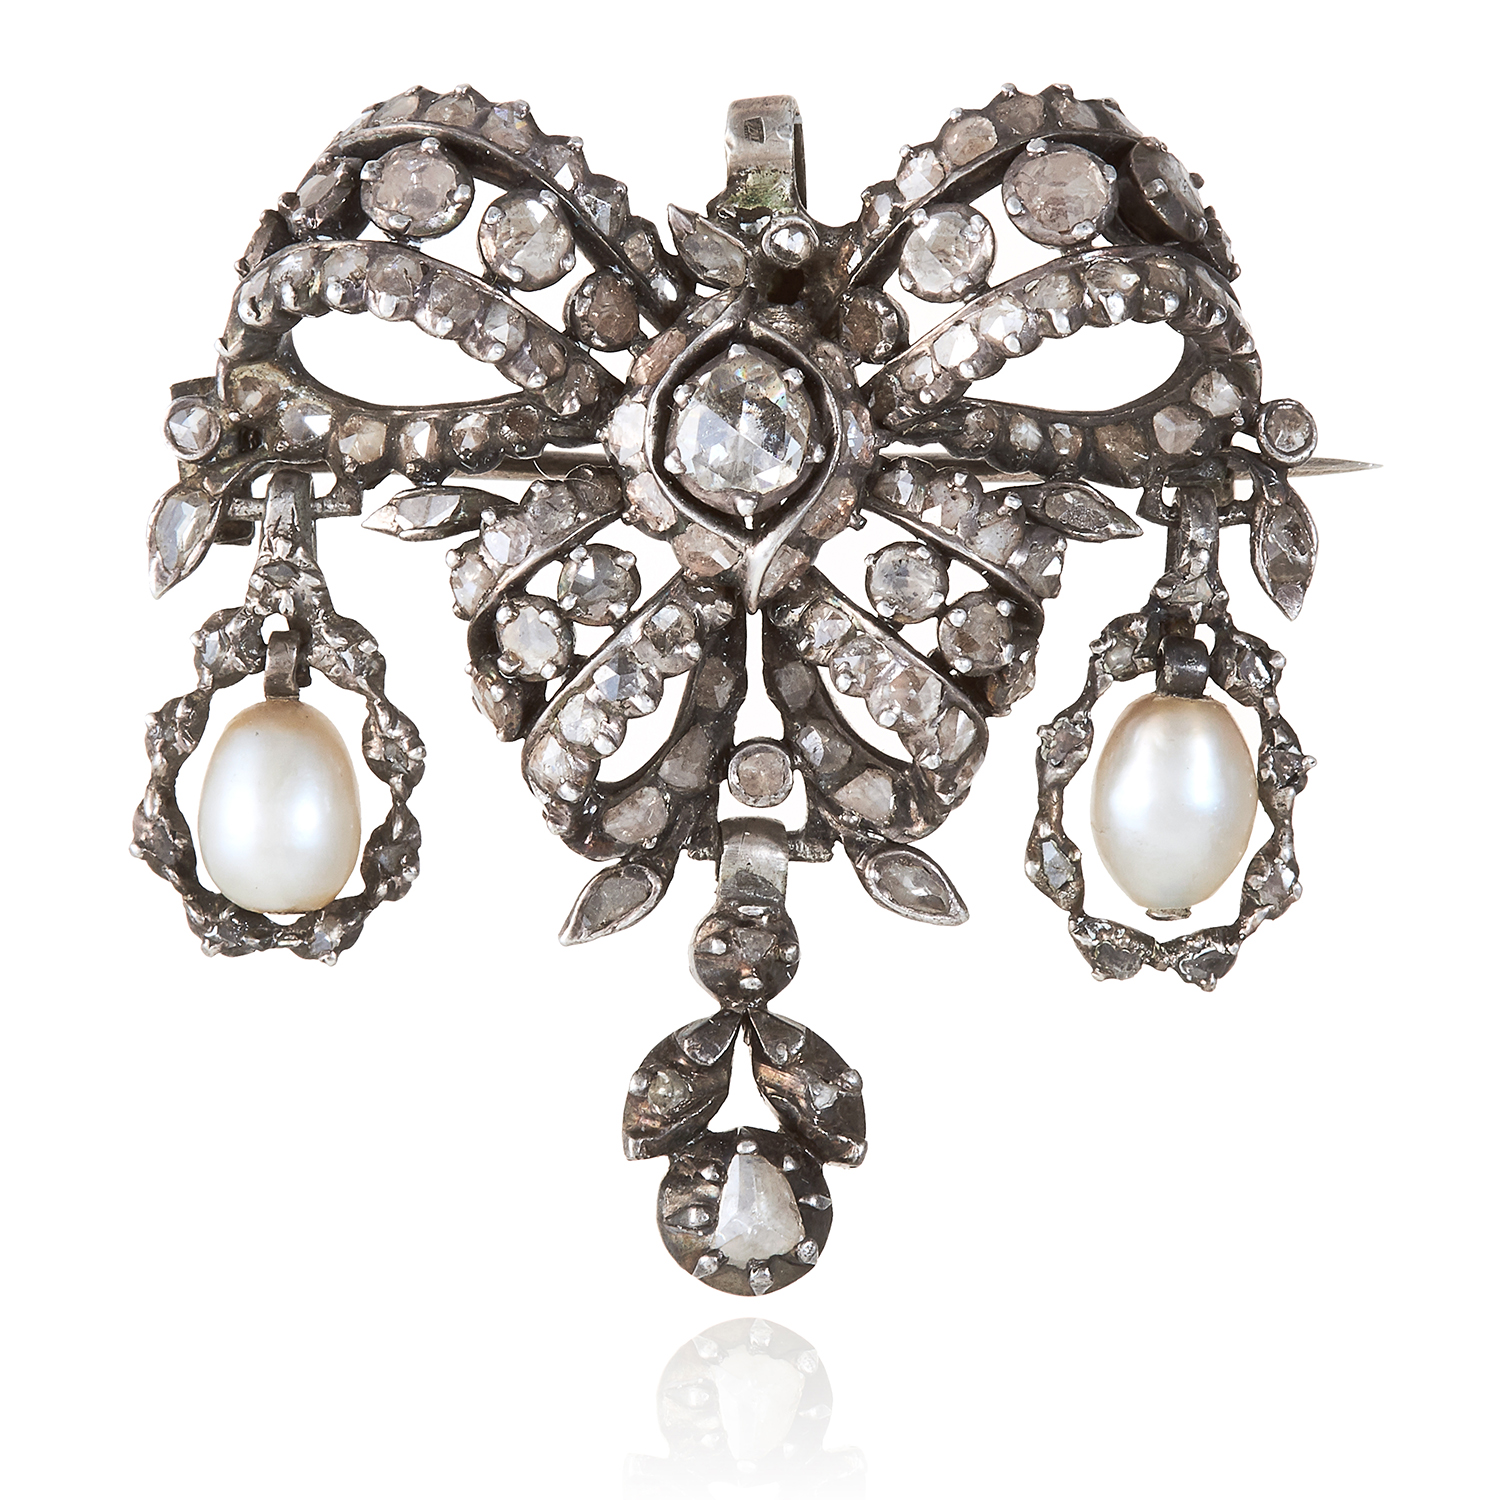 Los 351 - A NATURAL SALTWATER PEARL AND DIAMOND PENDANT / BROOCH, CIRCA 1820 in white gold or silver, the